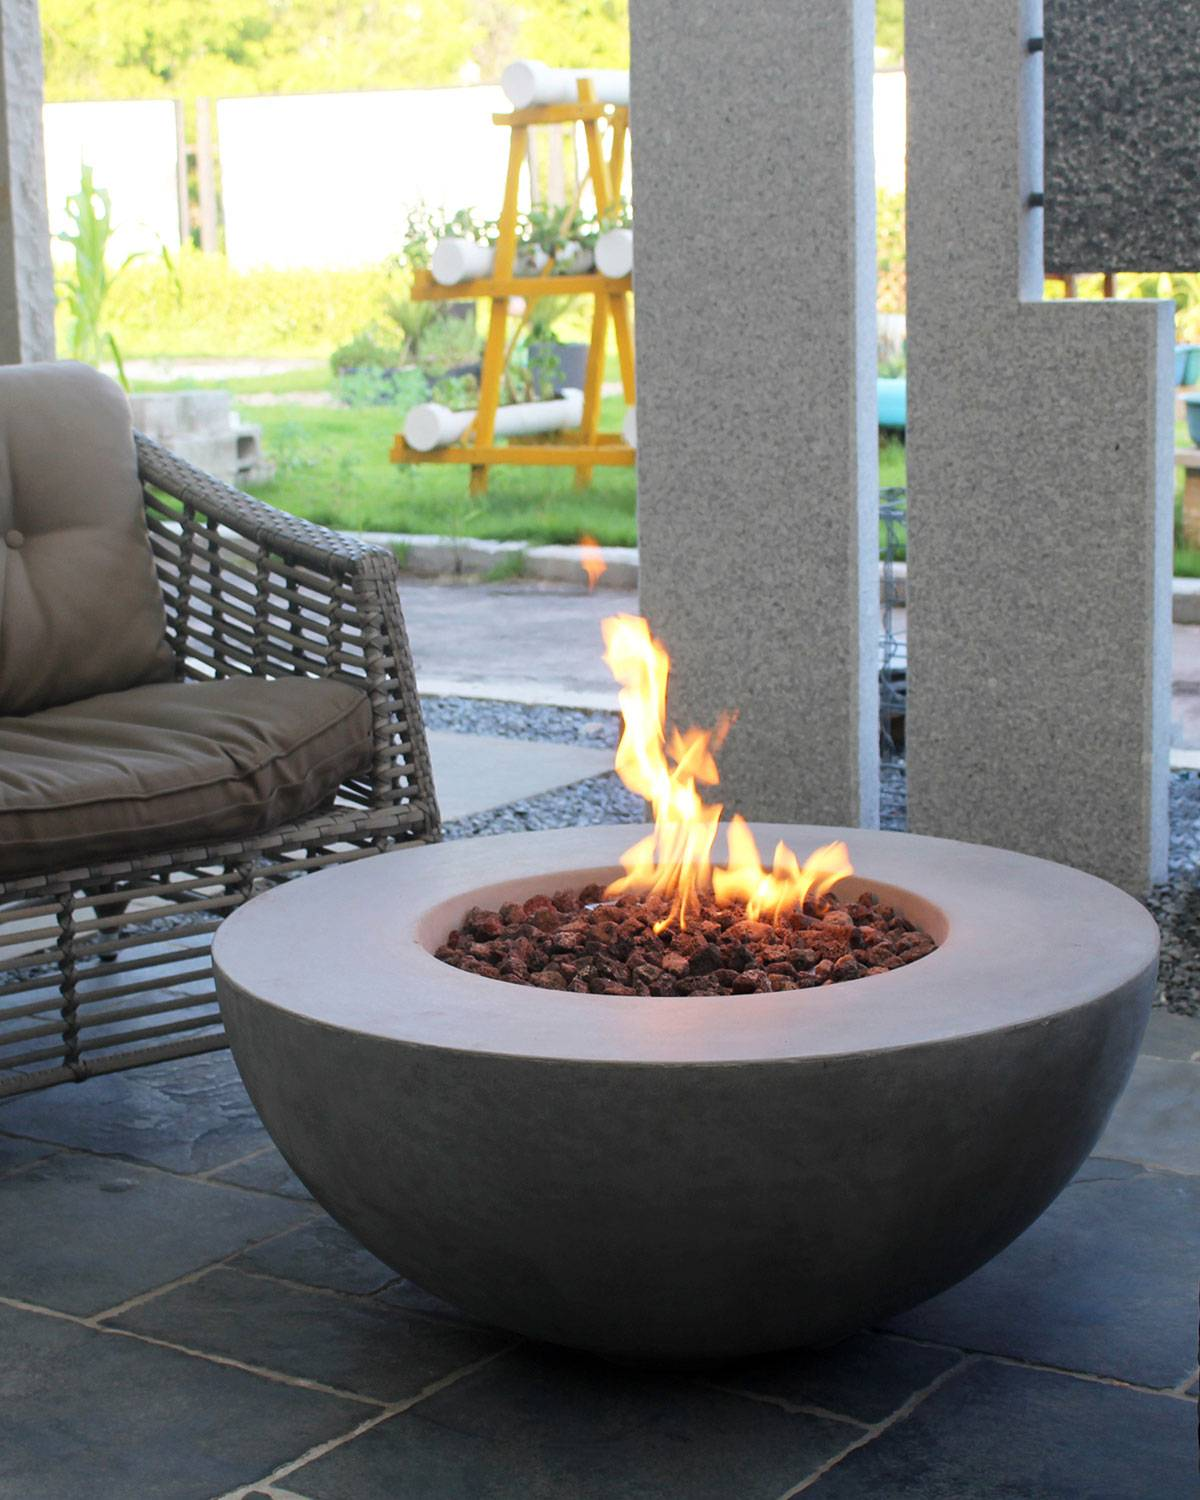 Elementi Lunar Bowl Outdoor Fire Pit Table with Propane Gas Assembly